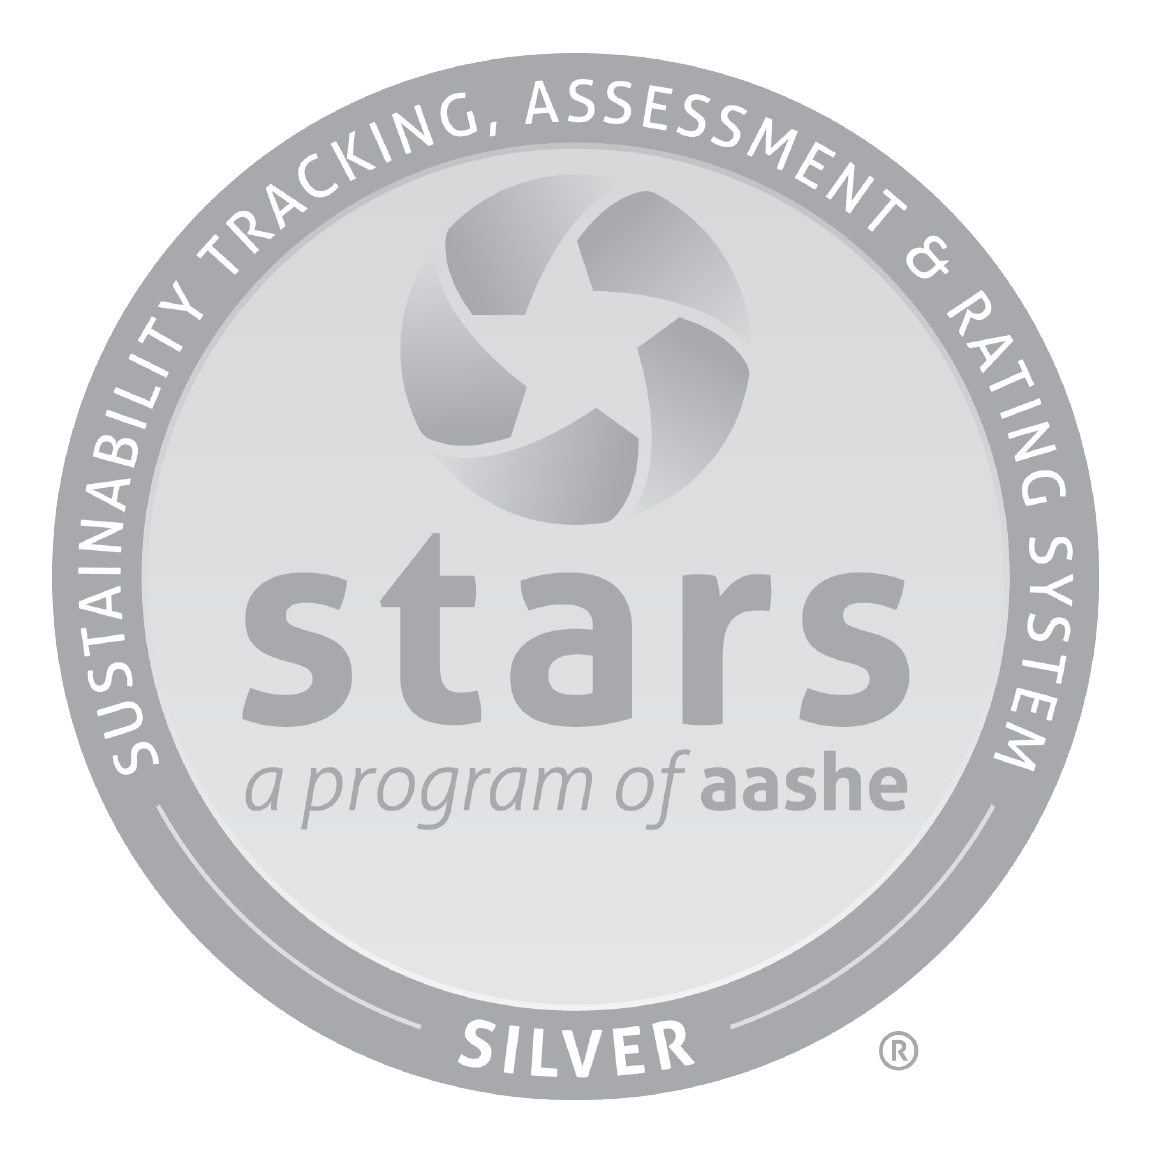 STARS silver rating for Fleming College